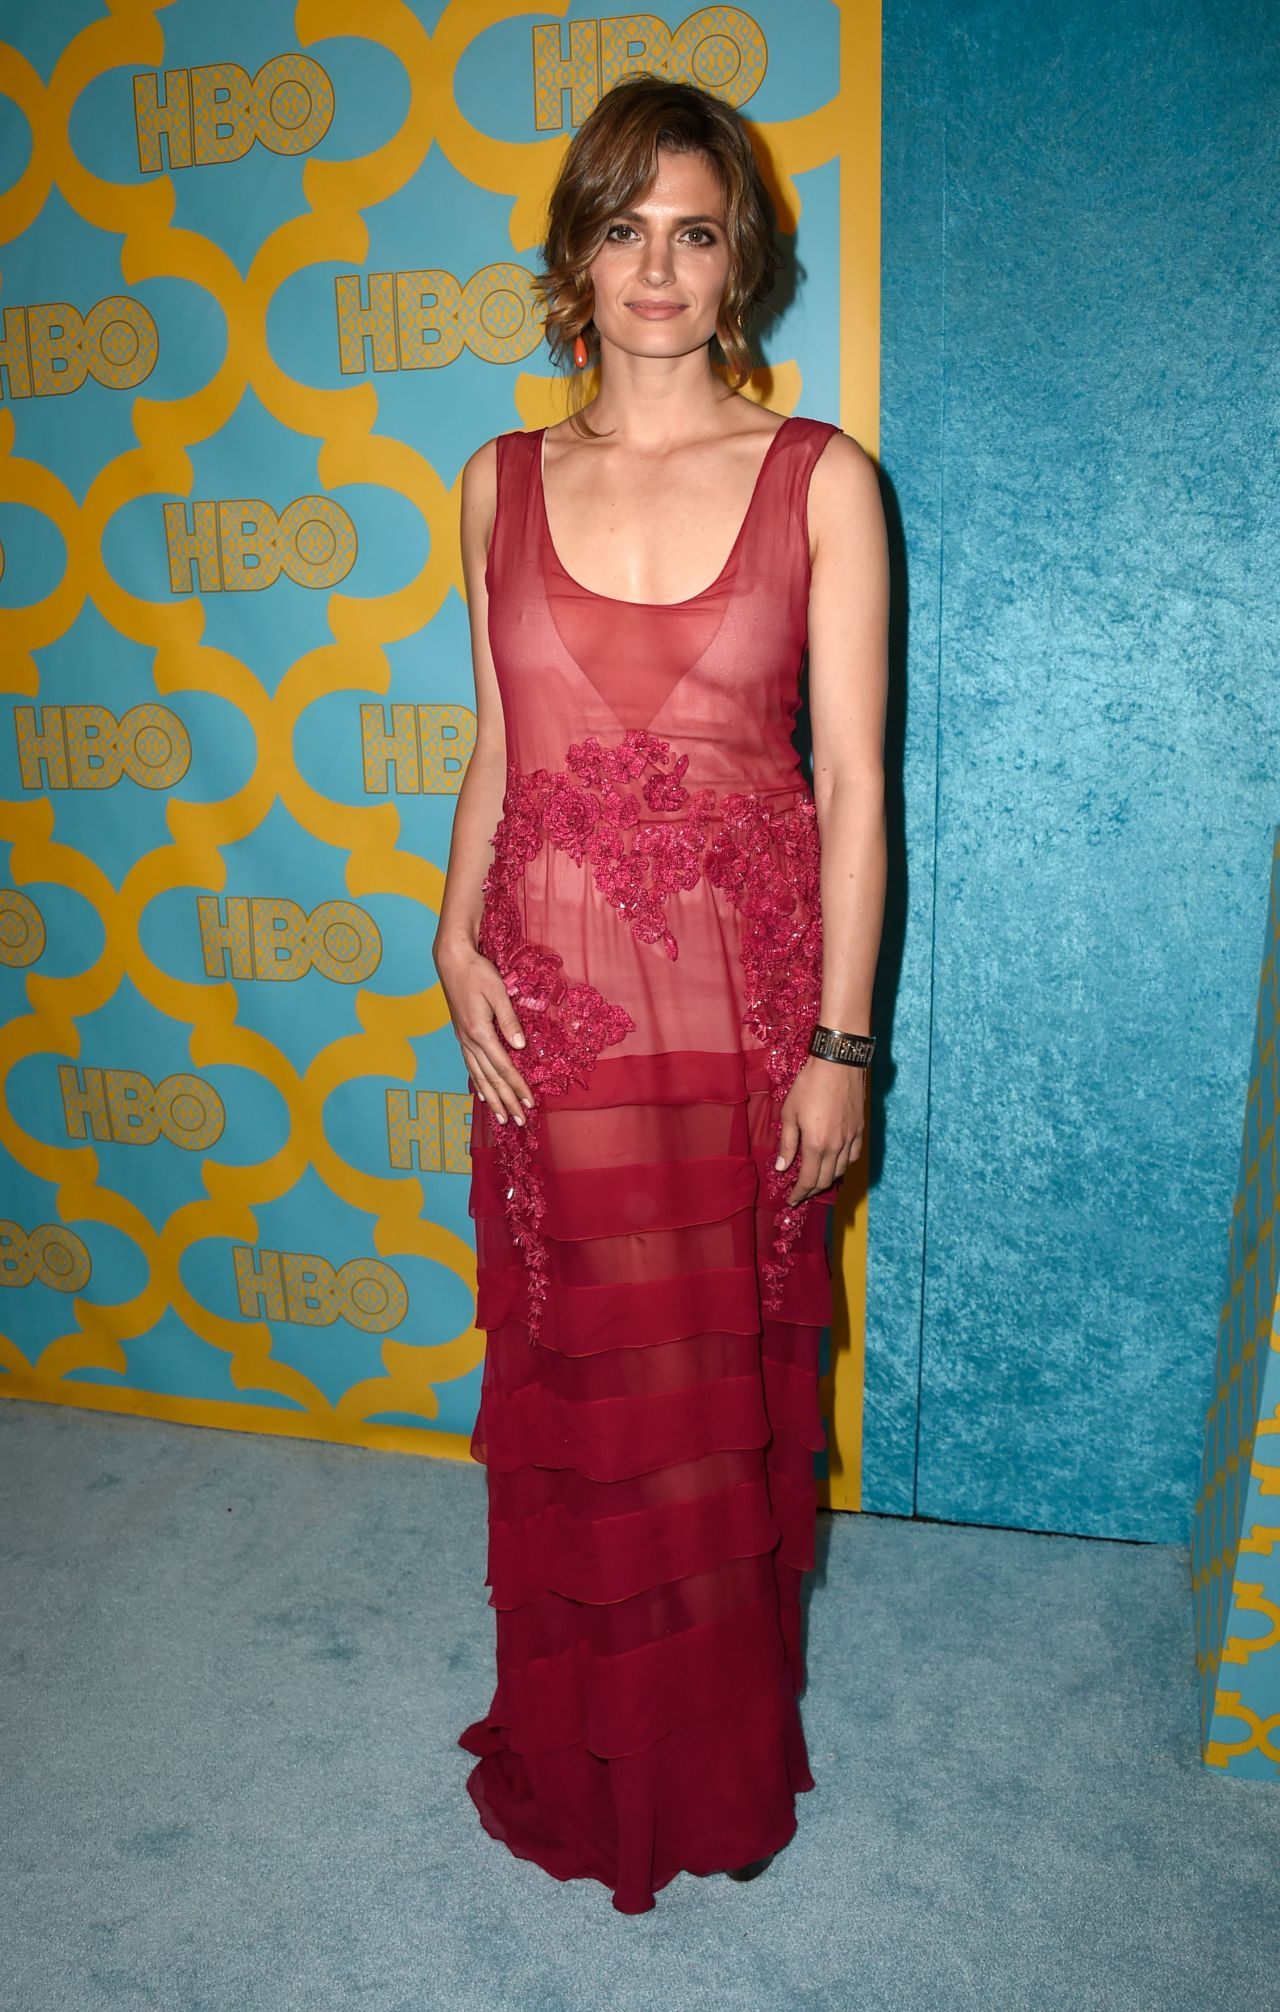 Stana Katic HBOs Post 2015 Golden Globe Awards Party